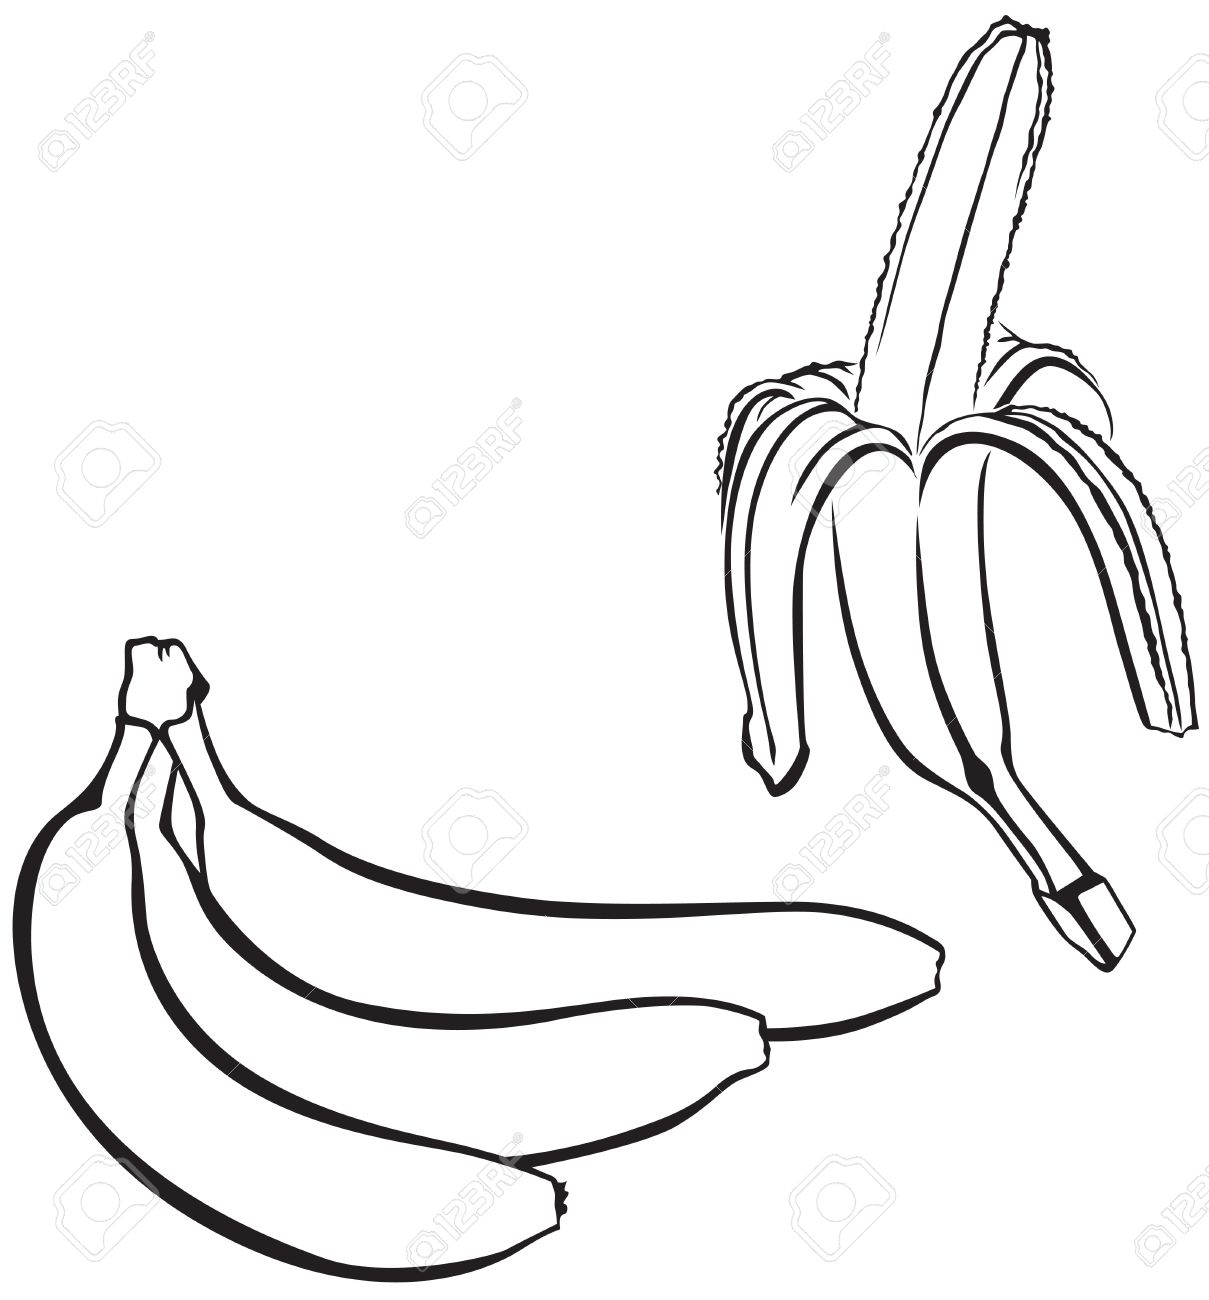 1209x1300 Contour Image Of A Bunch Of Bananas And One Peeled Banana Royalty